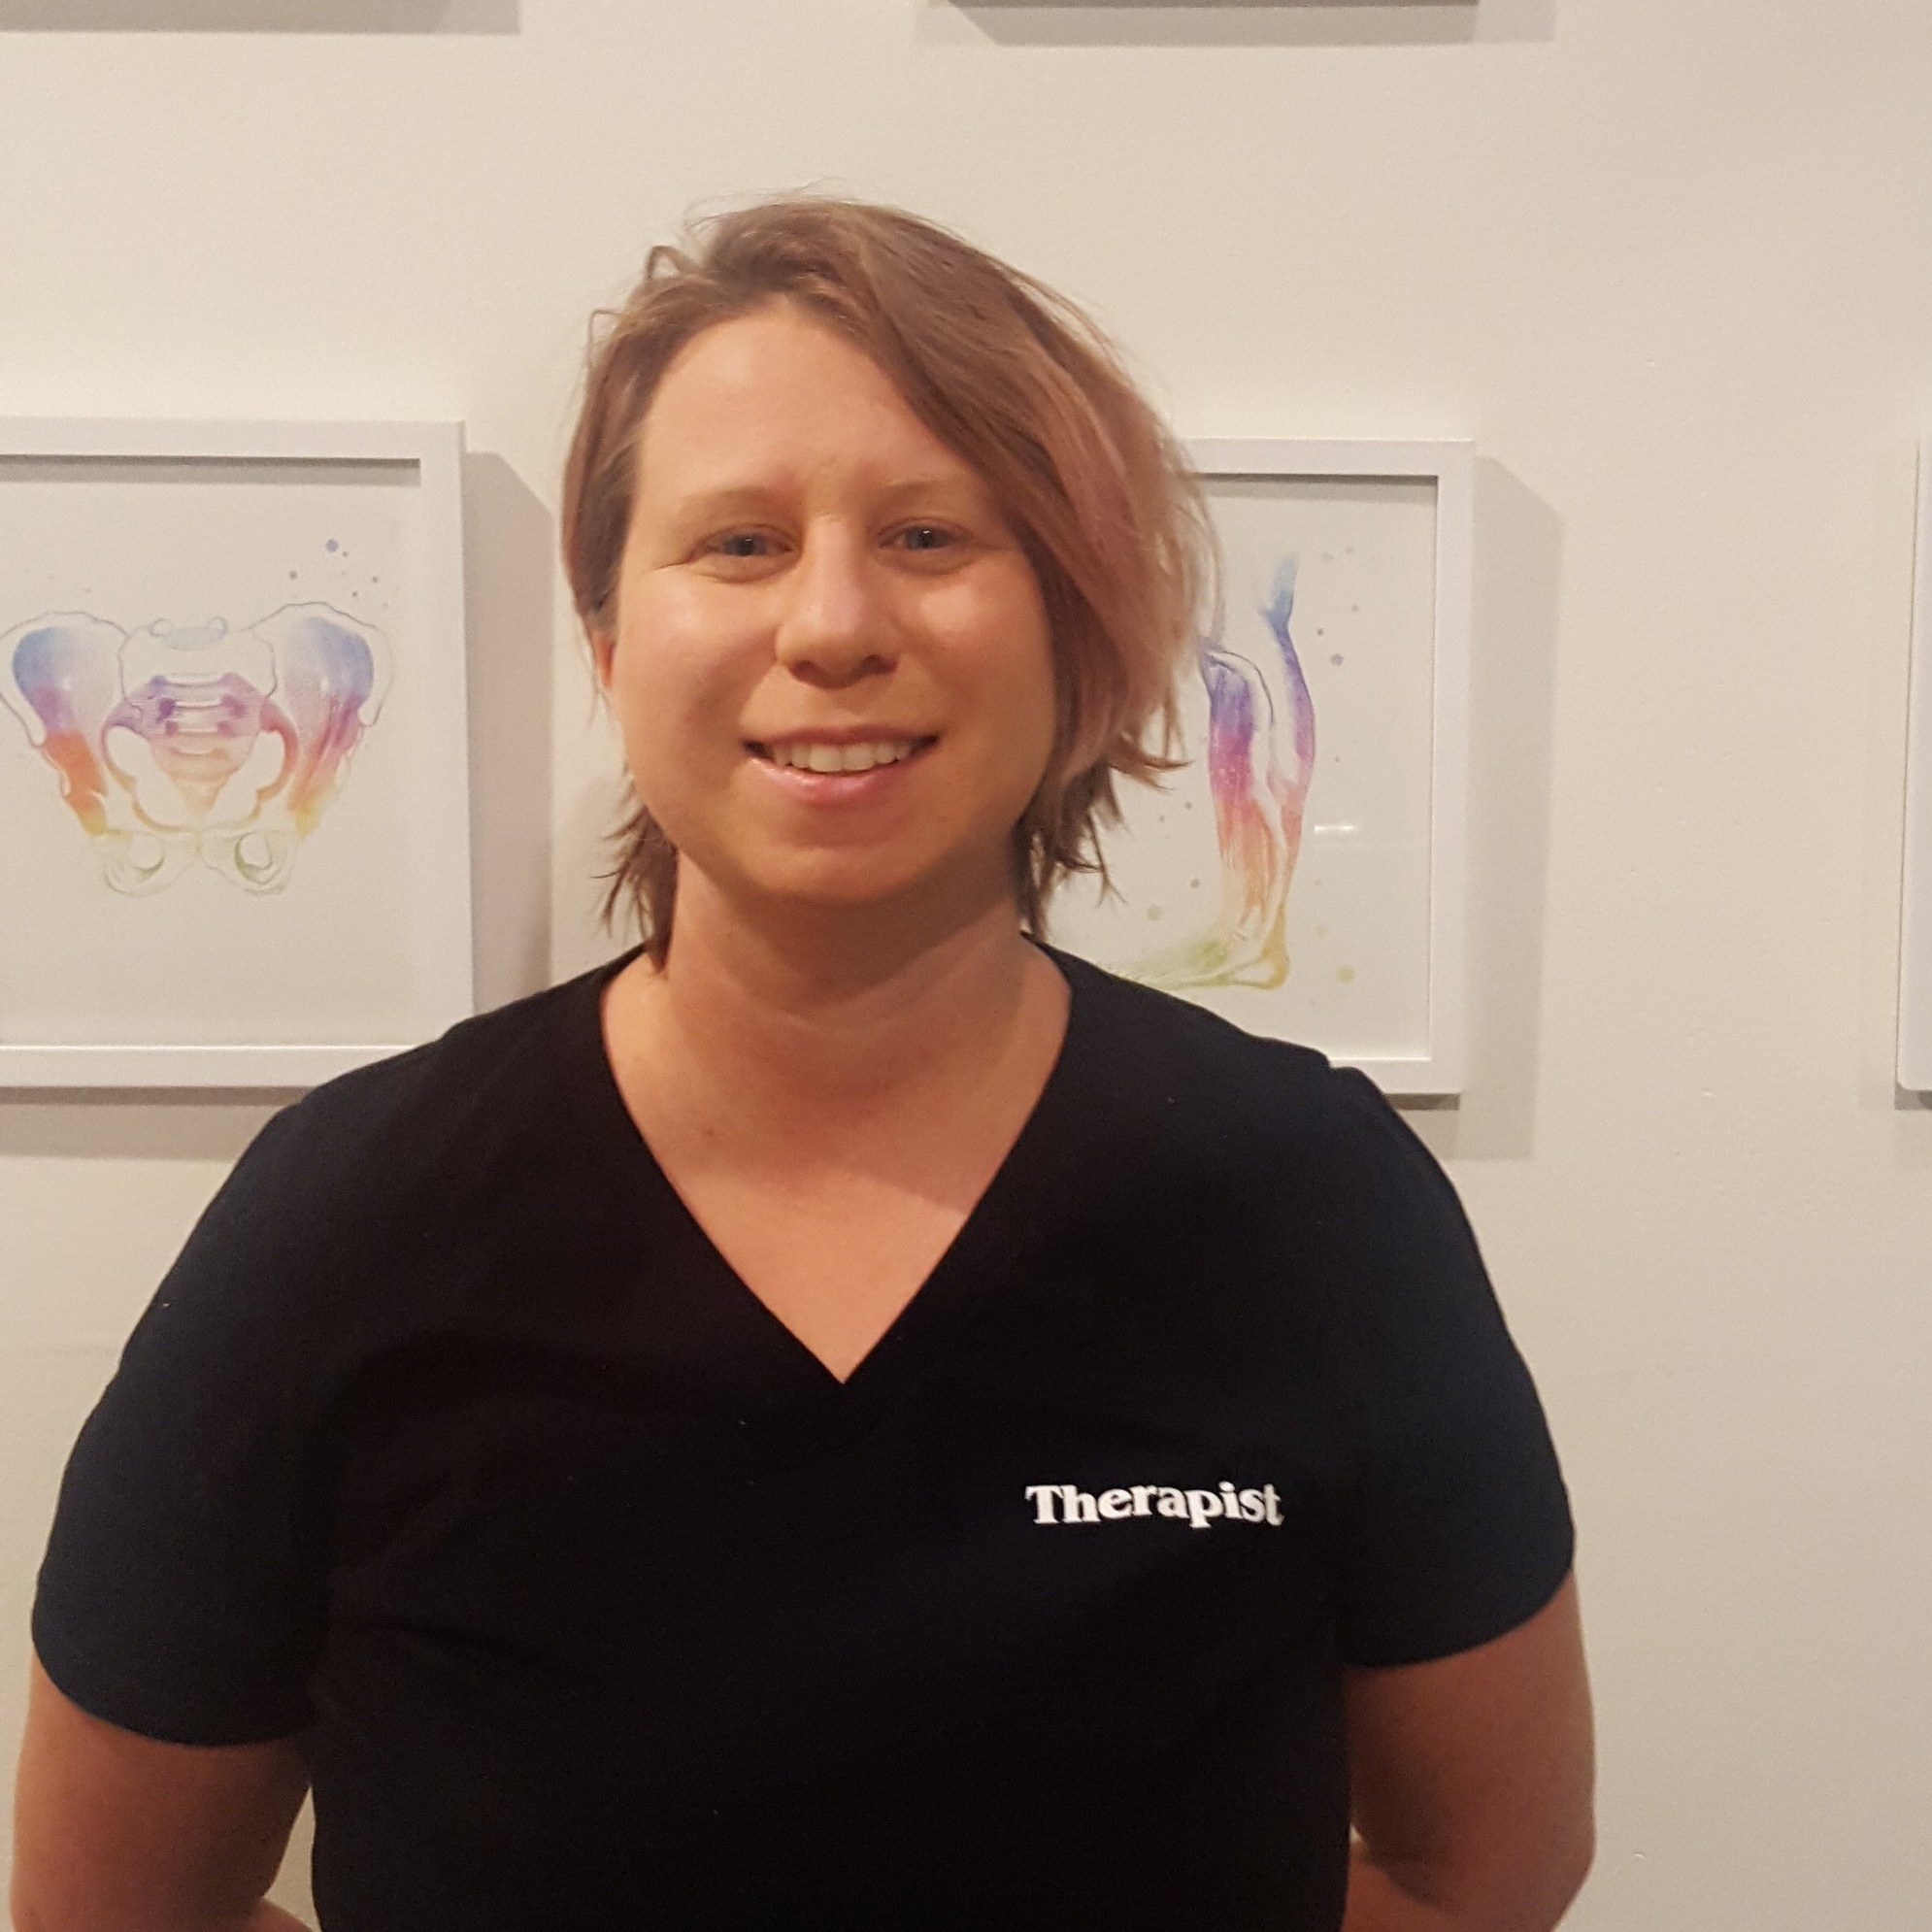 Rebecca - Certified Massage TherapistMy focus is on pain relief, improving sleep, and relaxing the nervous system. I customize a massage flow using the styles of Swedish, Lymphatic, Neural muscular therapy, and Deep Tissue Sculpting to create balance in the body.